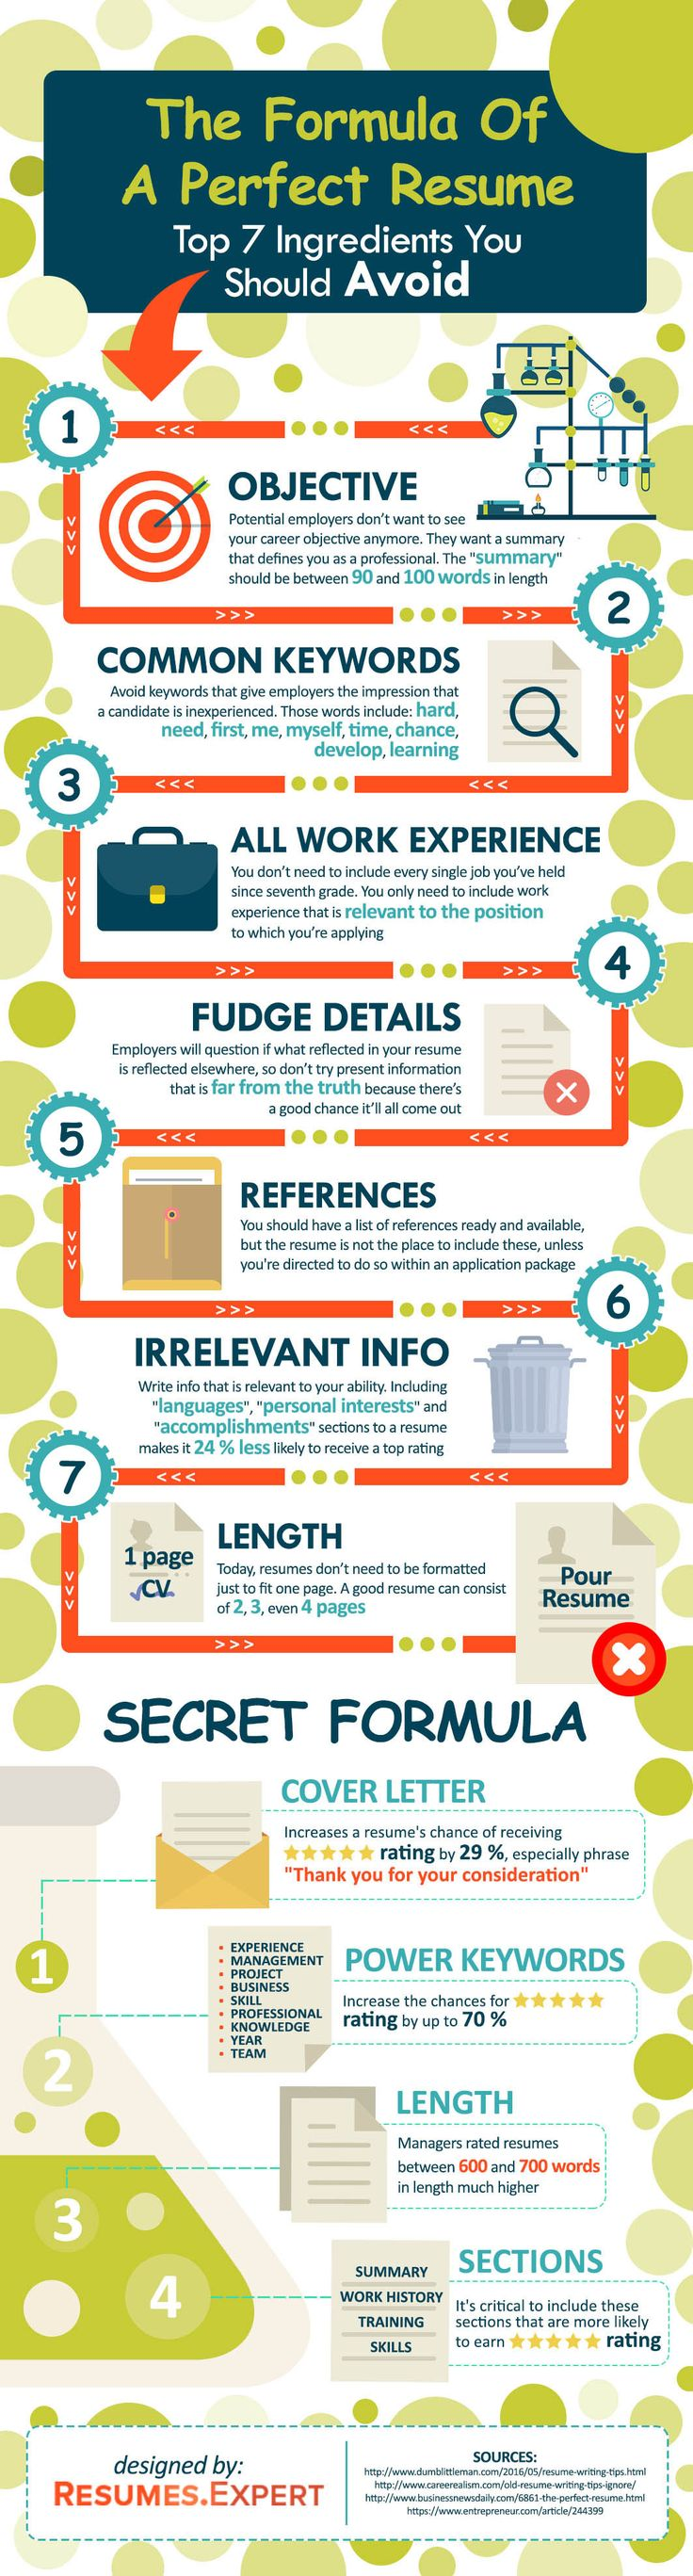 Best 20 Resume Writing Tips Ideas On Pinterest Cv Writing Tips